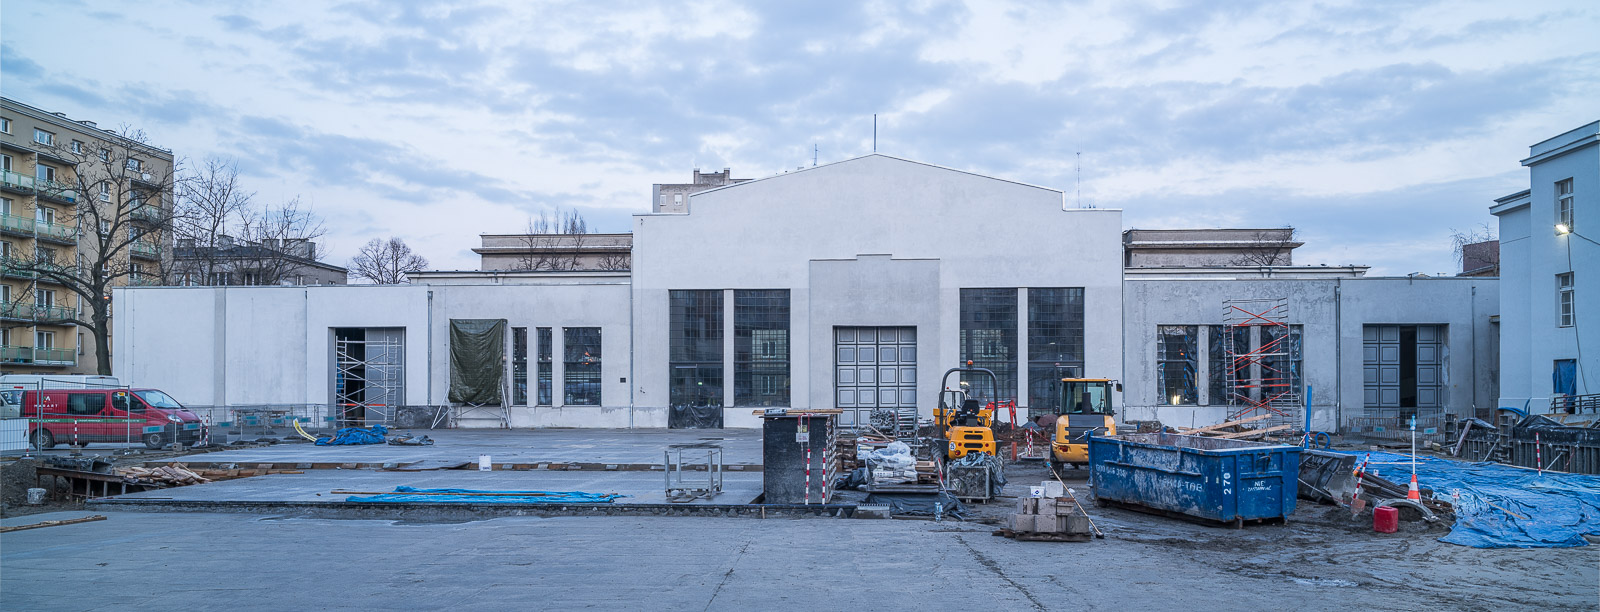 Construction of Nowy Teatr ICC in February 2016